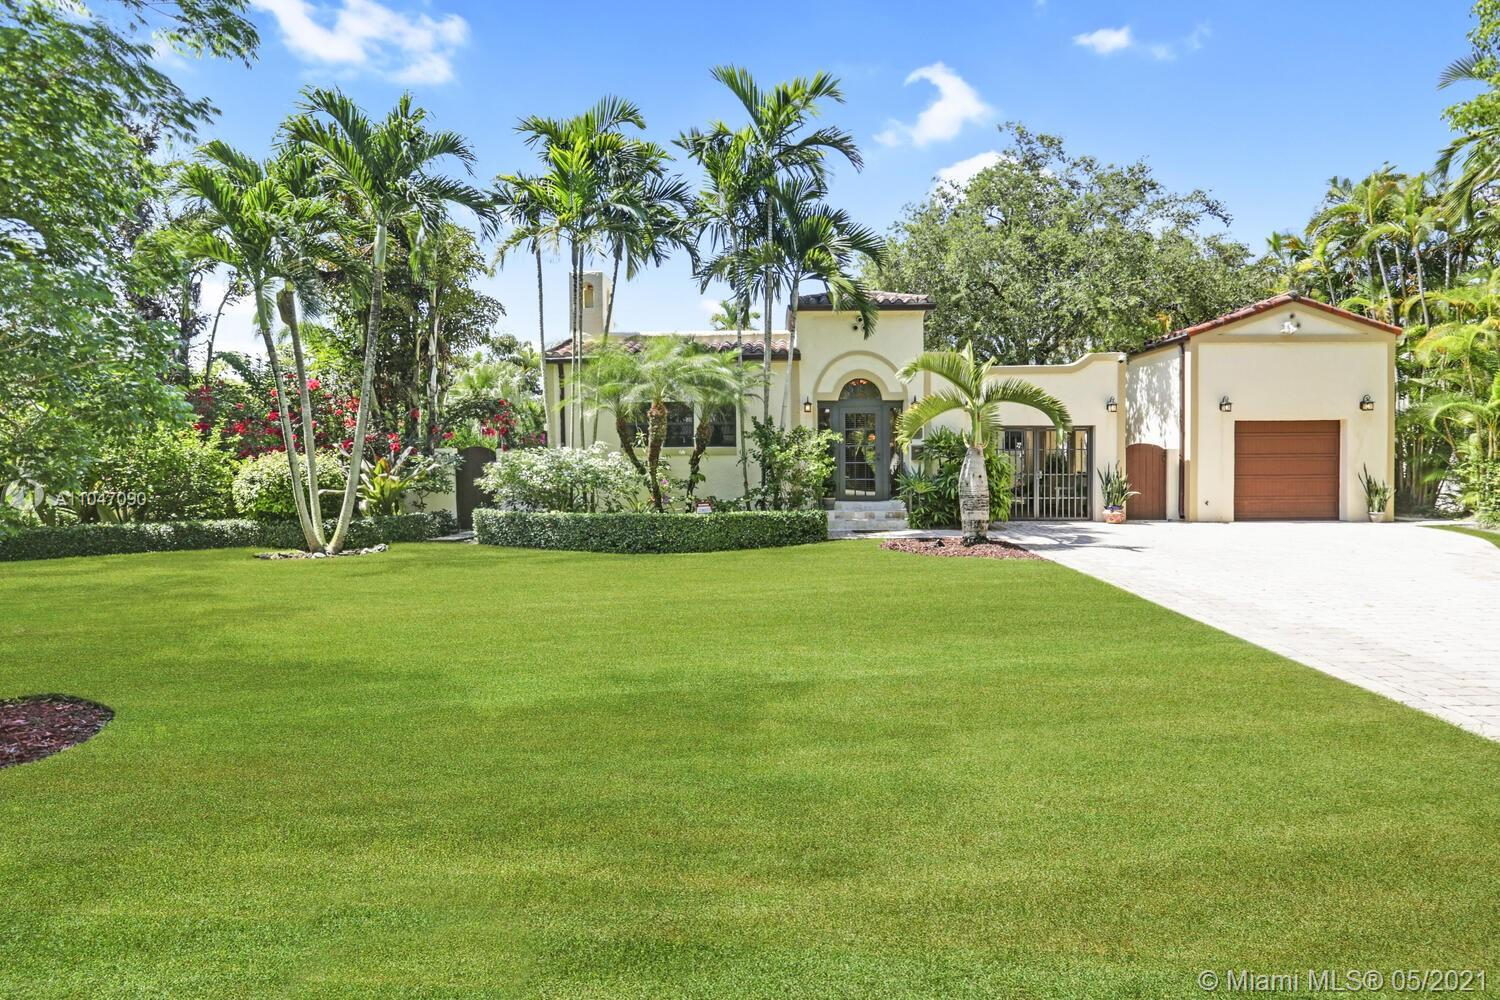 This stunning 4/4 Old Spanish home embodies 1920's Coral Gables charm & style, while boasting 2020's luxury & convenience. With full impact glass, updated kitchen & baths, electric, plumbing & roof, this beauty is completely turn-key. The open floor plan, high ceilings, gorgeous Brazilian cherry wood floors, sunken marble Roman tub, sparkling pool and professional landscaping are just a few of the impressive features not to be missed. The separate in-law suite (4th bedroom) has a private entrance - perfect for guests or extended family. In addition to multiple courtyards, there is a carport and an air-conditioned 1-car garage with loft storage area. Nestled on a lush, sun-dappled street, within walking distance of the Riviera Golf Course and the University of Miami. This is the one!